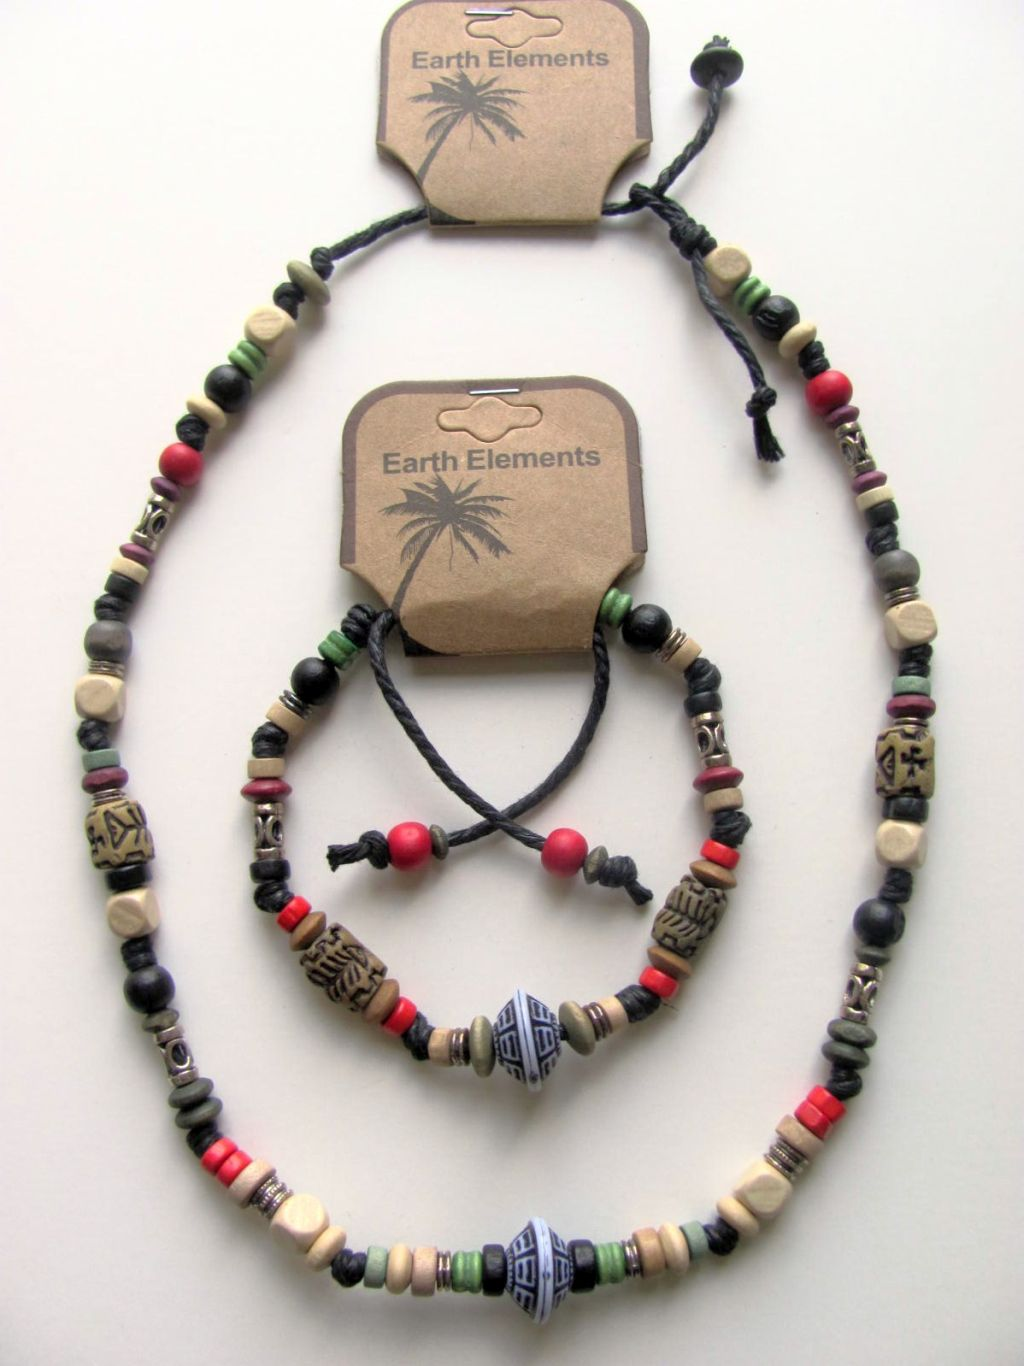 Barbados Earth Elements Spiritual Beaded Necklace Bracelet, Beach Surfer Men's Jewelry